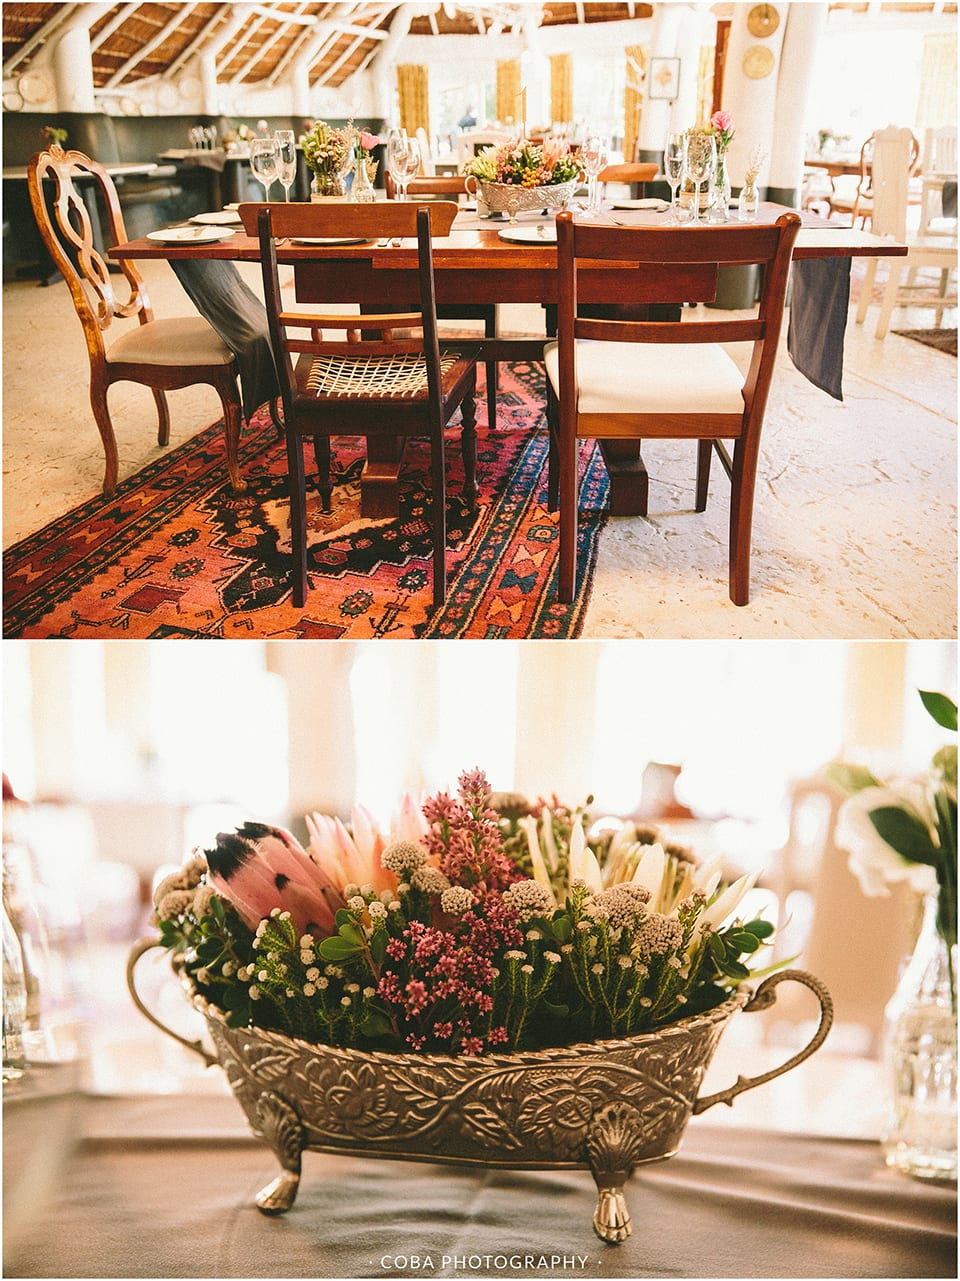 Cobus & Annerie - Towerbosch - Coba Photography (21)